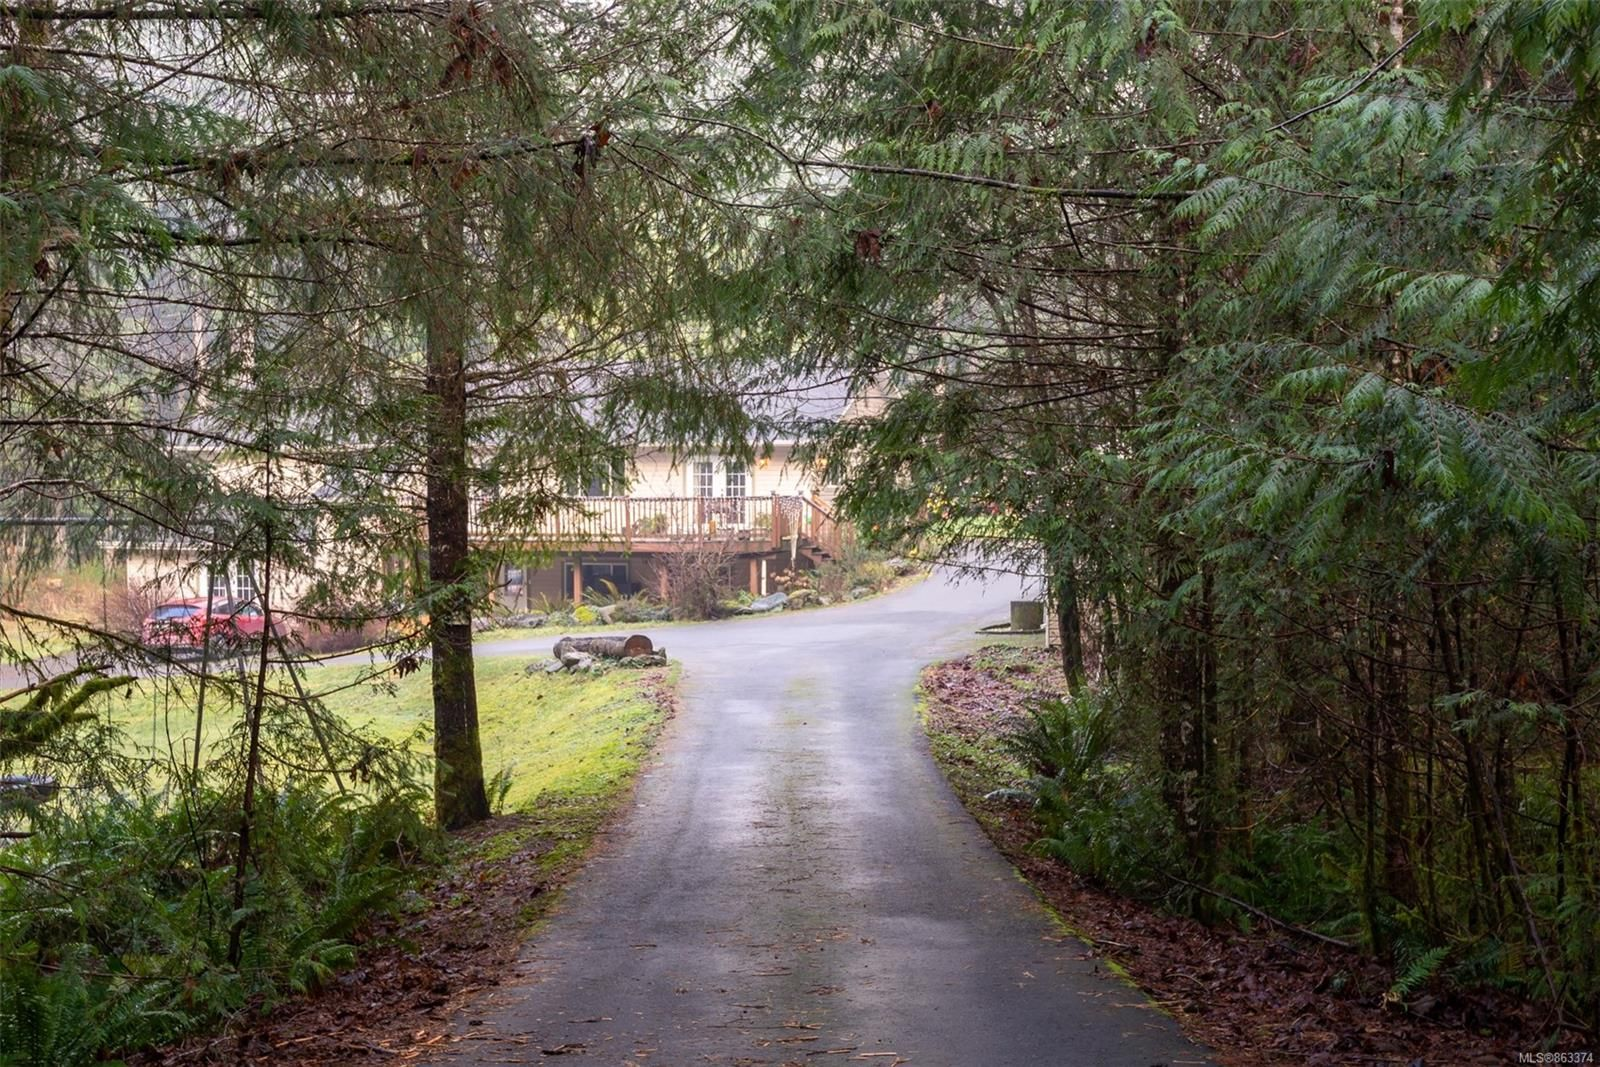 Photo 8: Photos: 572 Sabre Rd in : NI Kelsey Bay/Sayward House for sale (North Island)  : MLS®# 863374